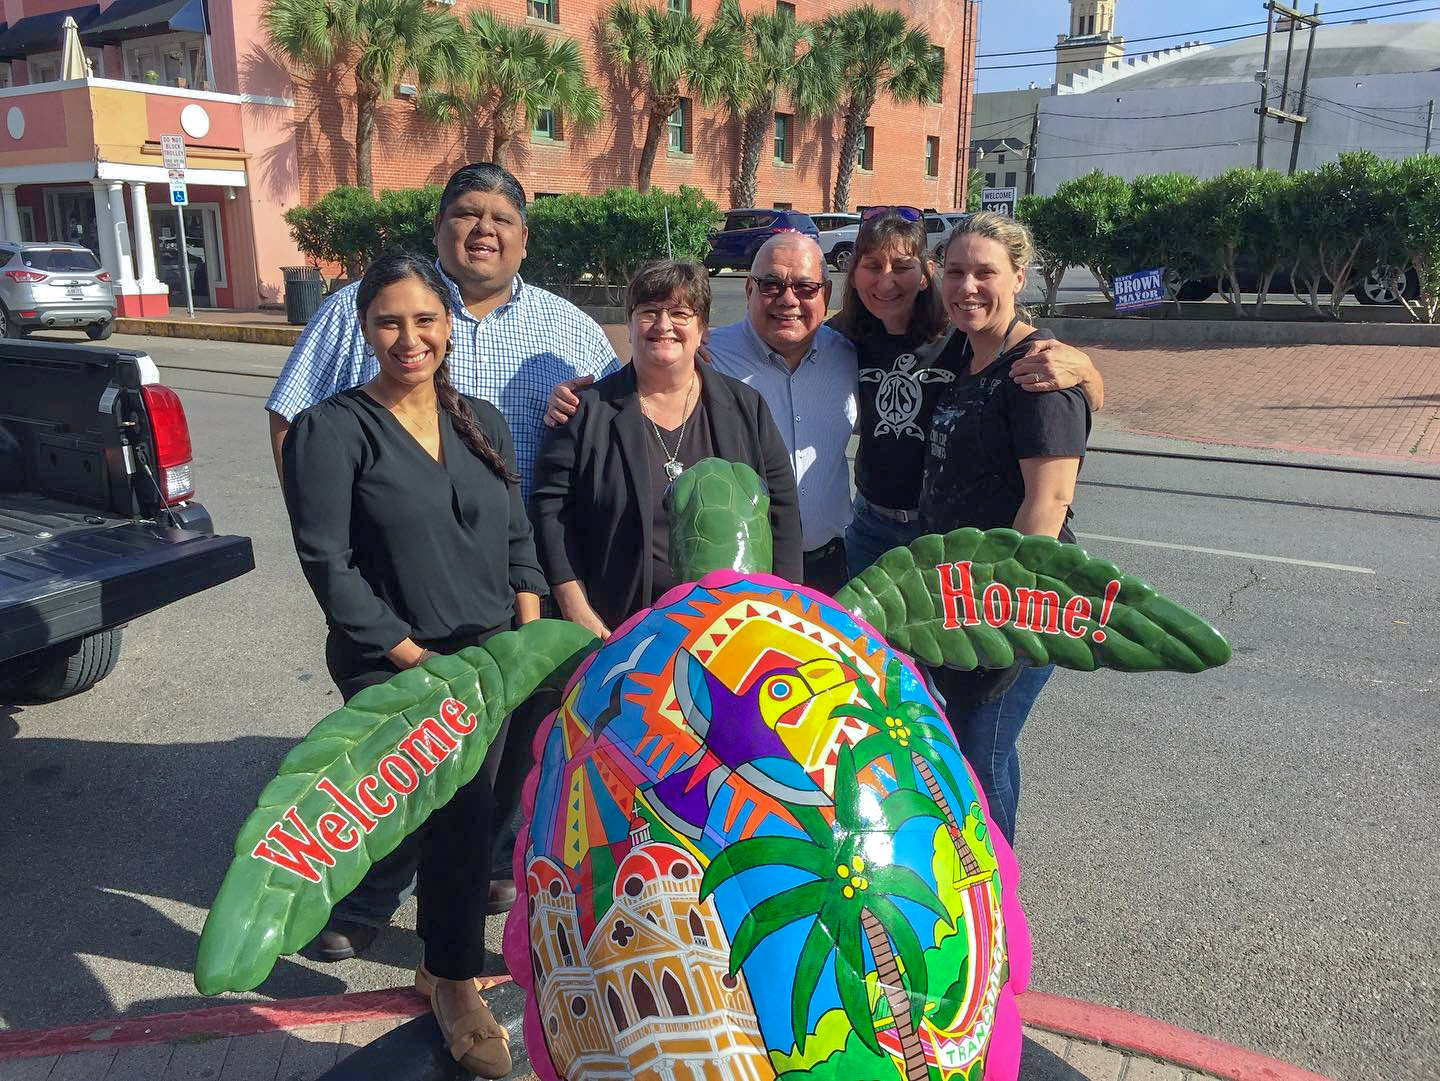 Newest 'Turtles About Town' Statues Celebrate Galveston's Commitment to Sea Turtle Protection and Local Art